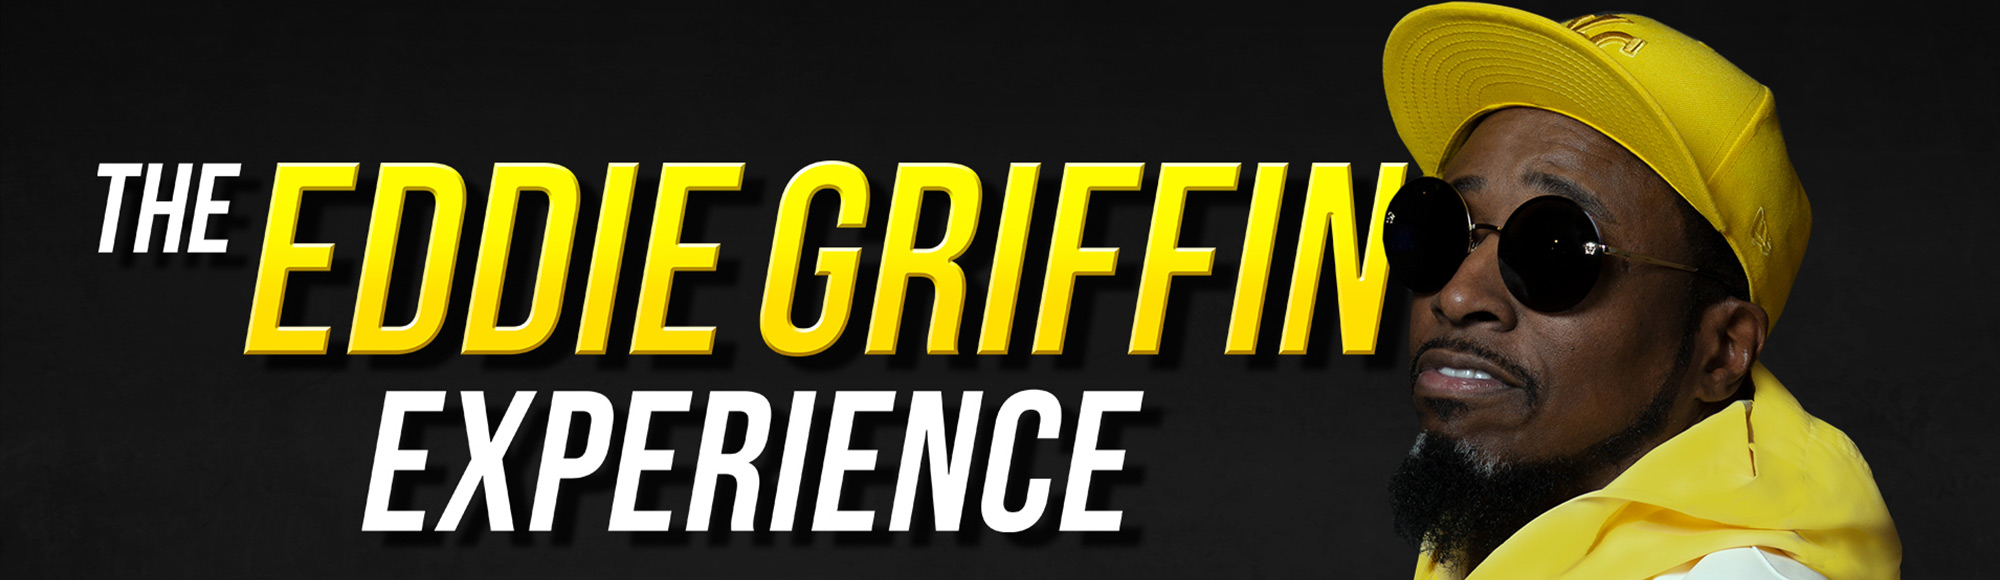 The Eddie Griffin Experience show